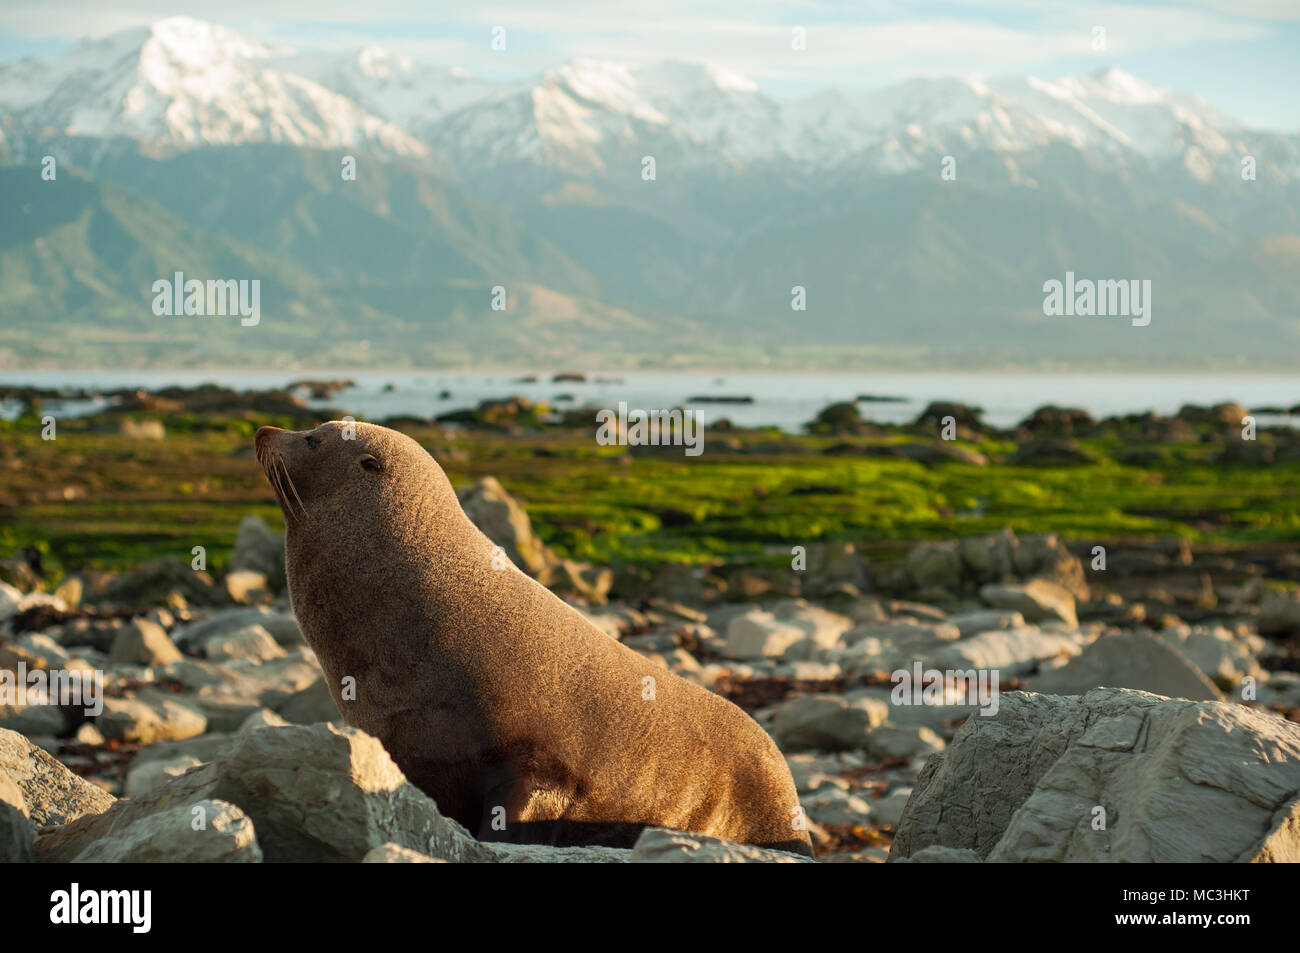 it wild life seal in kaikoura new zealand. i took it early morning so it look very sleepy. if you want image of morning, you can use it. - Stock Image